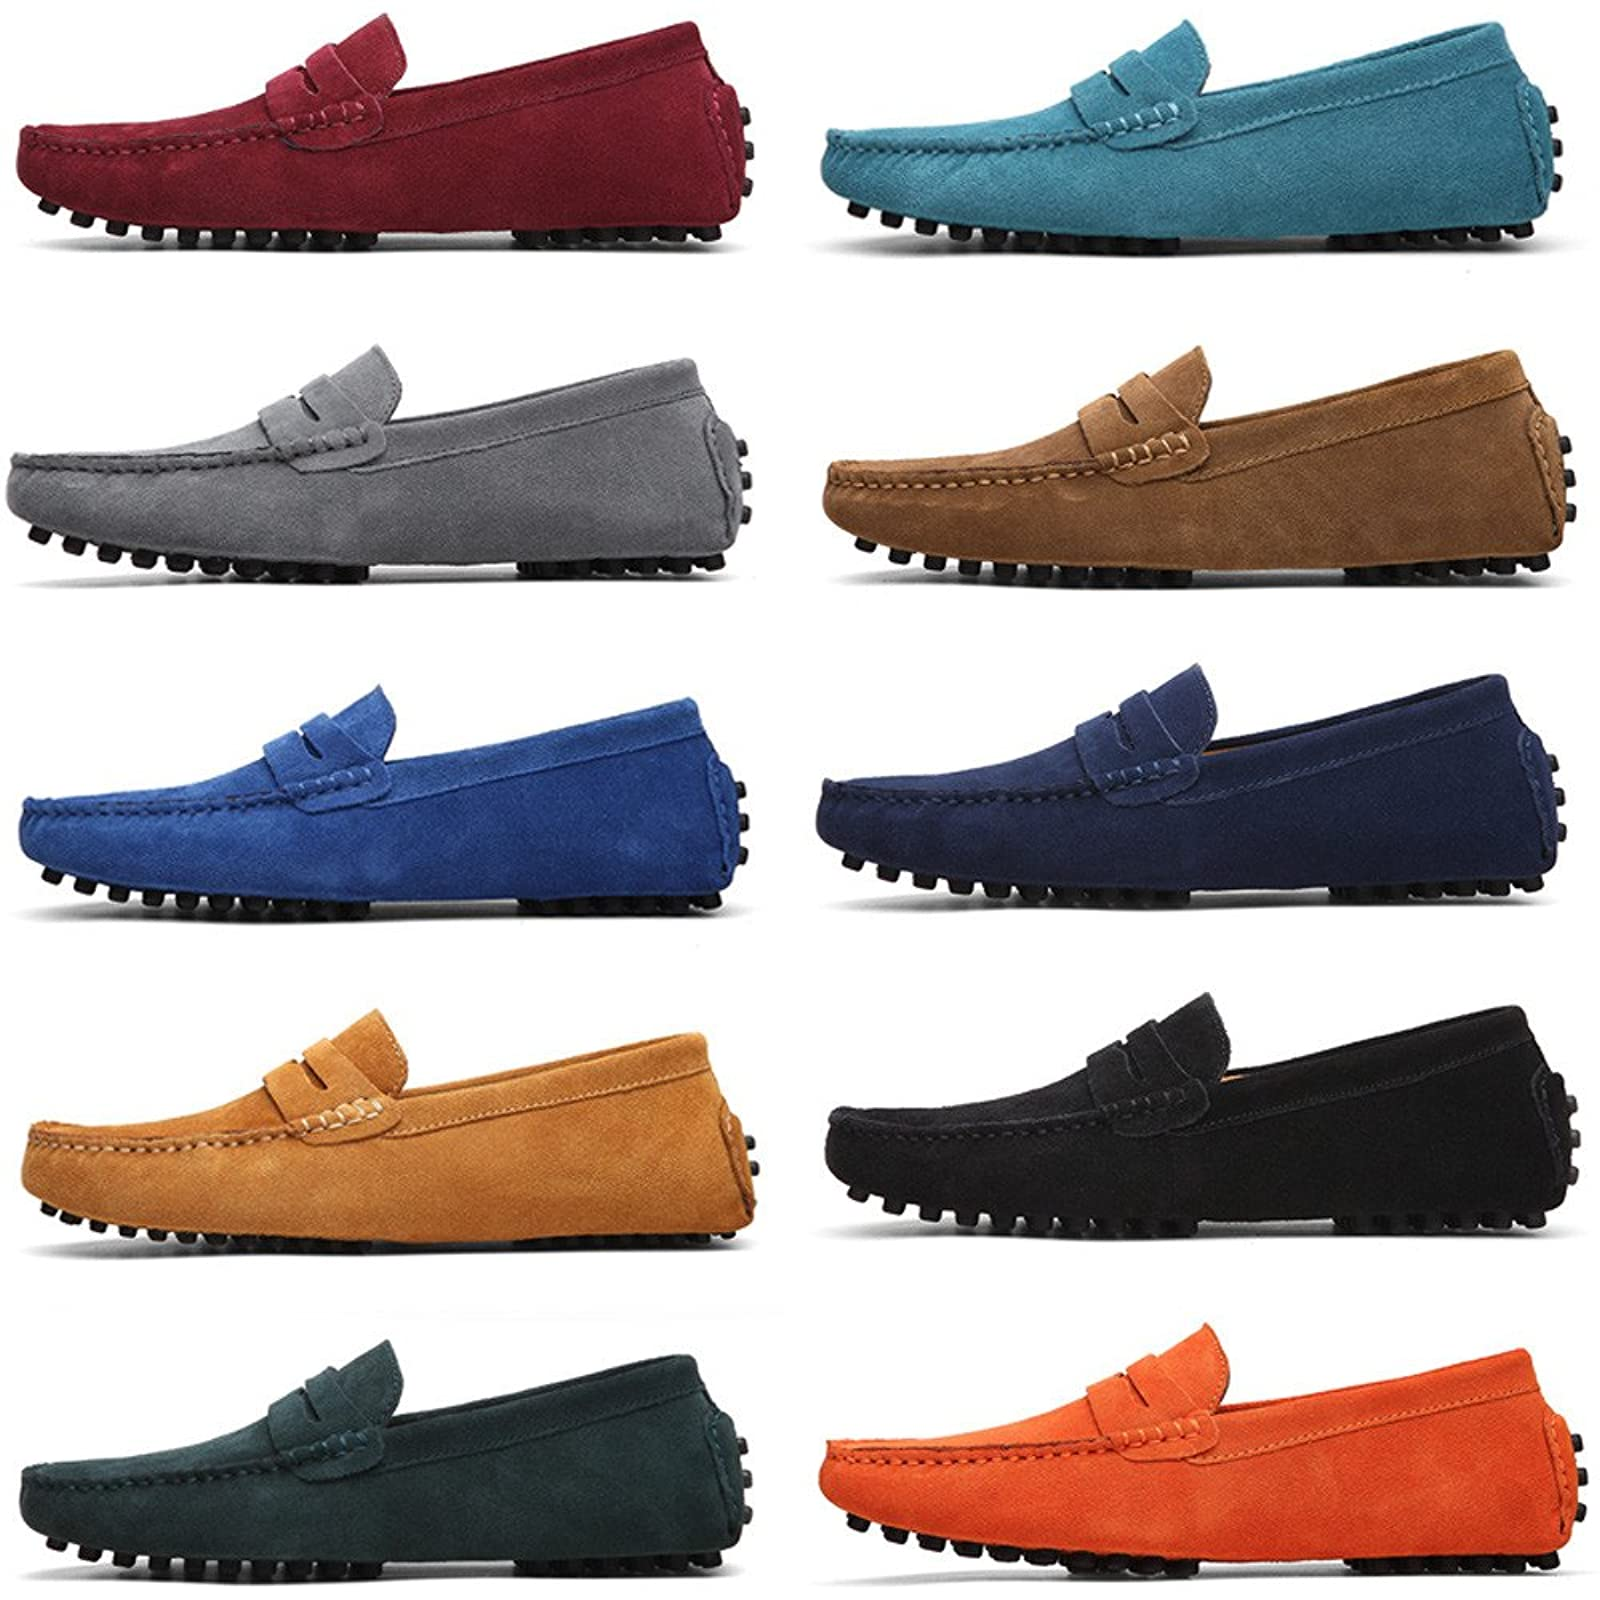 Eagsouni Men S Loafers Warm Moccasins Winter Driving Shoes Flats Slippers Slip On Casual Penny Suede Leather Dress Boat Shoes Fashion